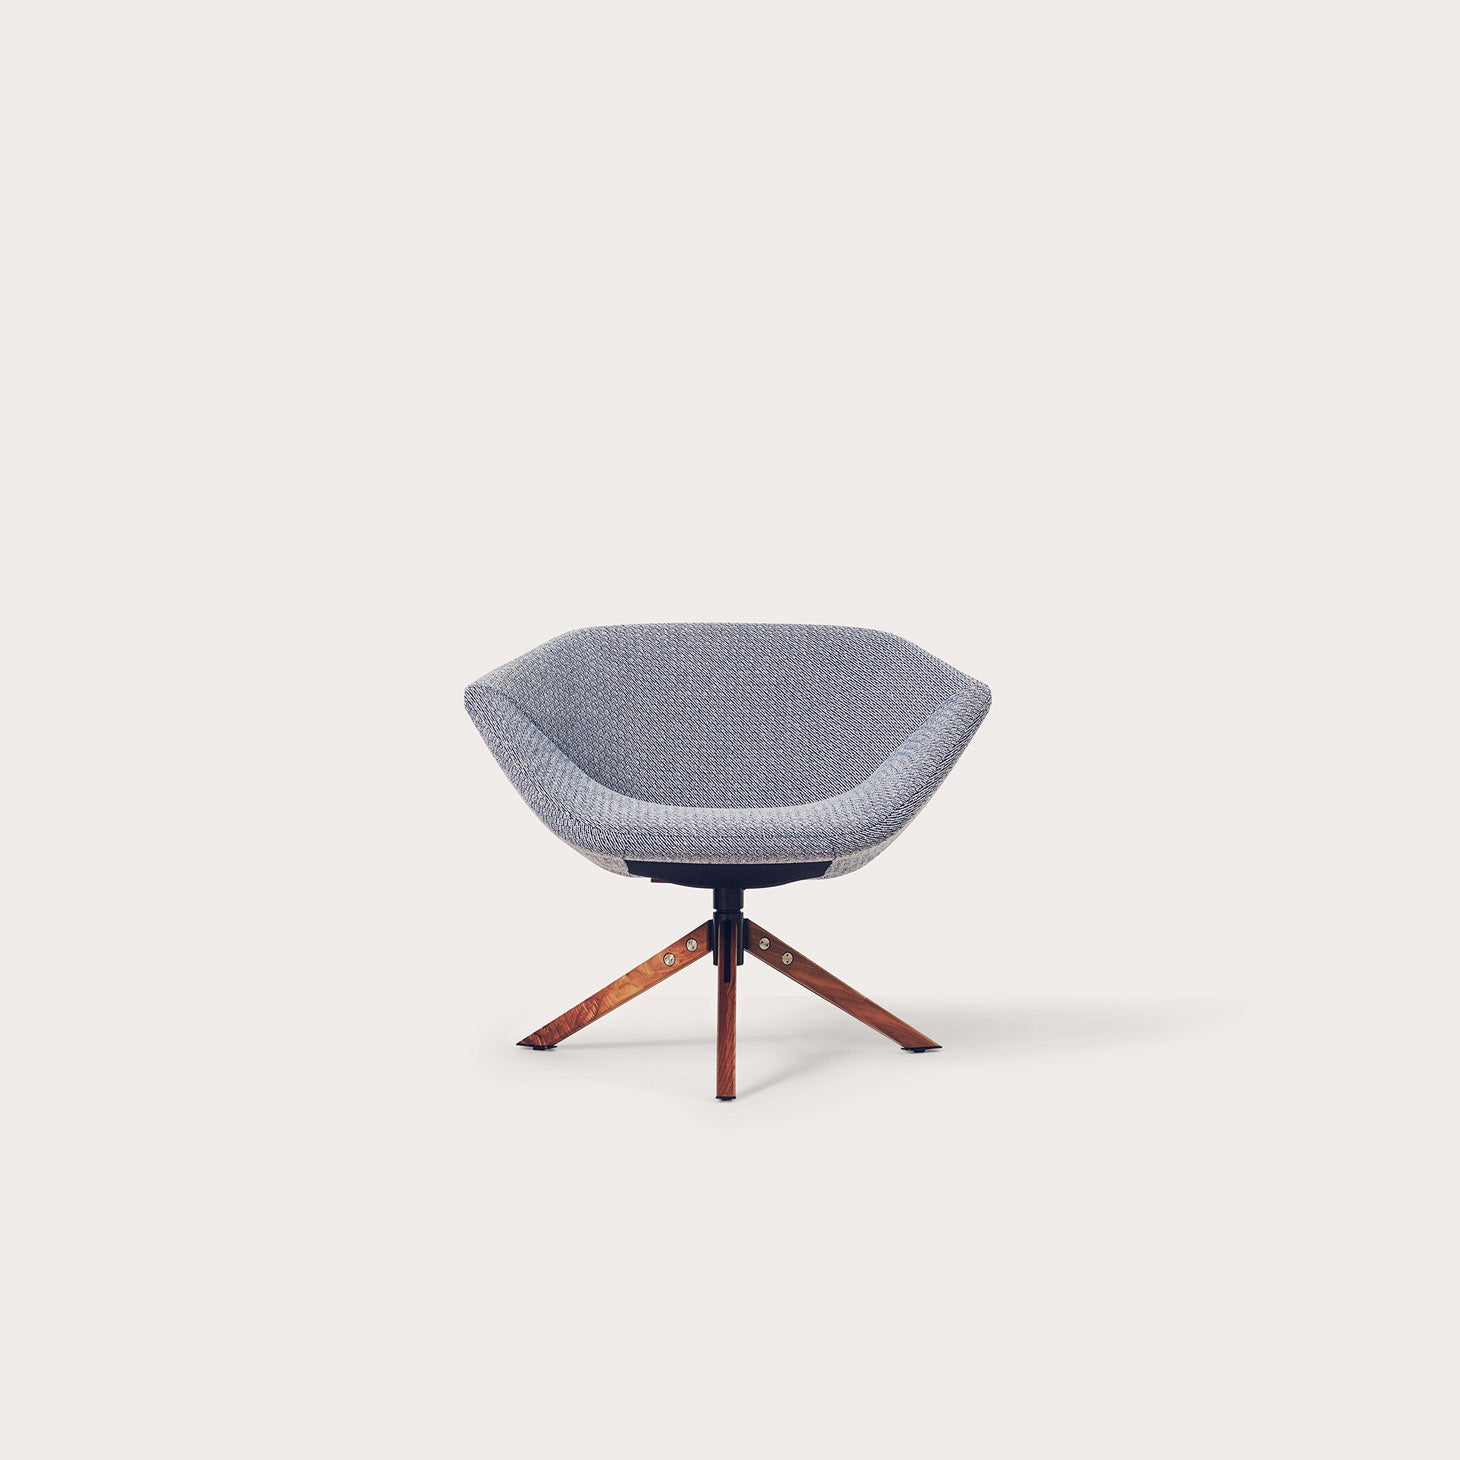 Ella Seating Niels Bendtsen Designer Furniture Sku: 134-240-10069